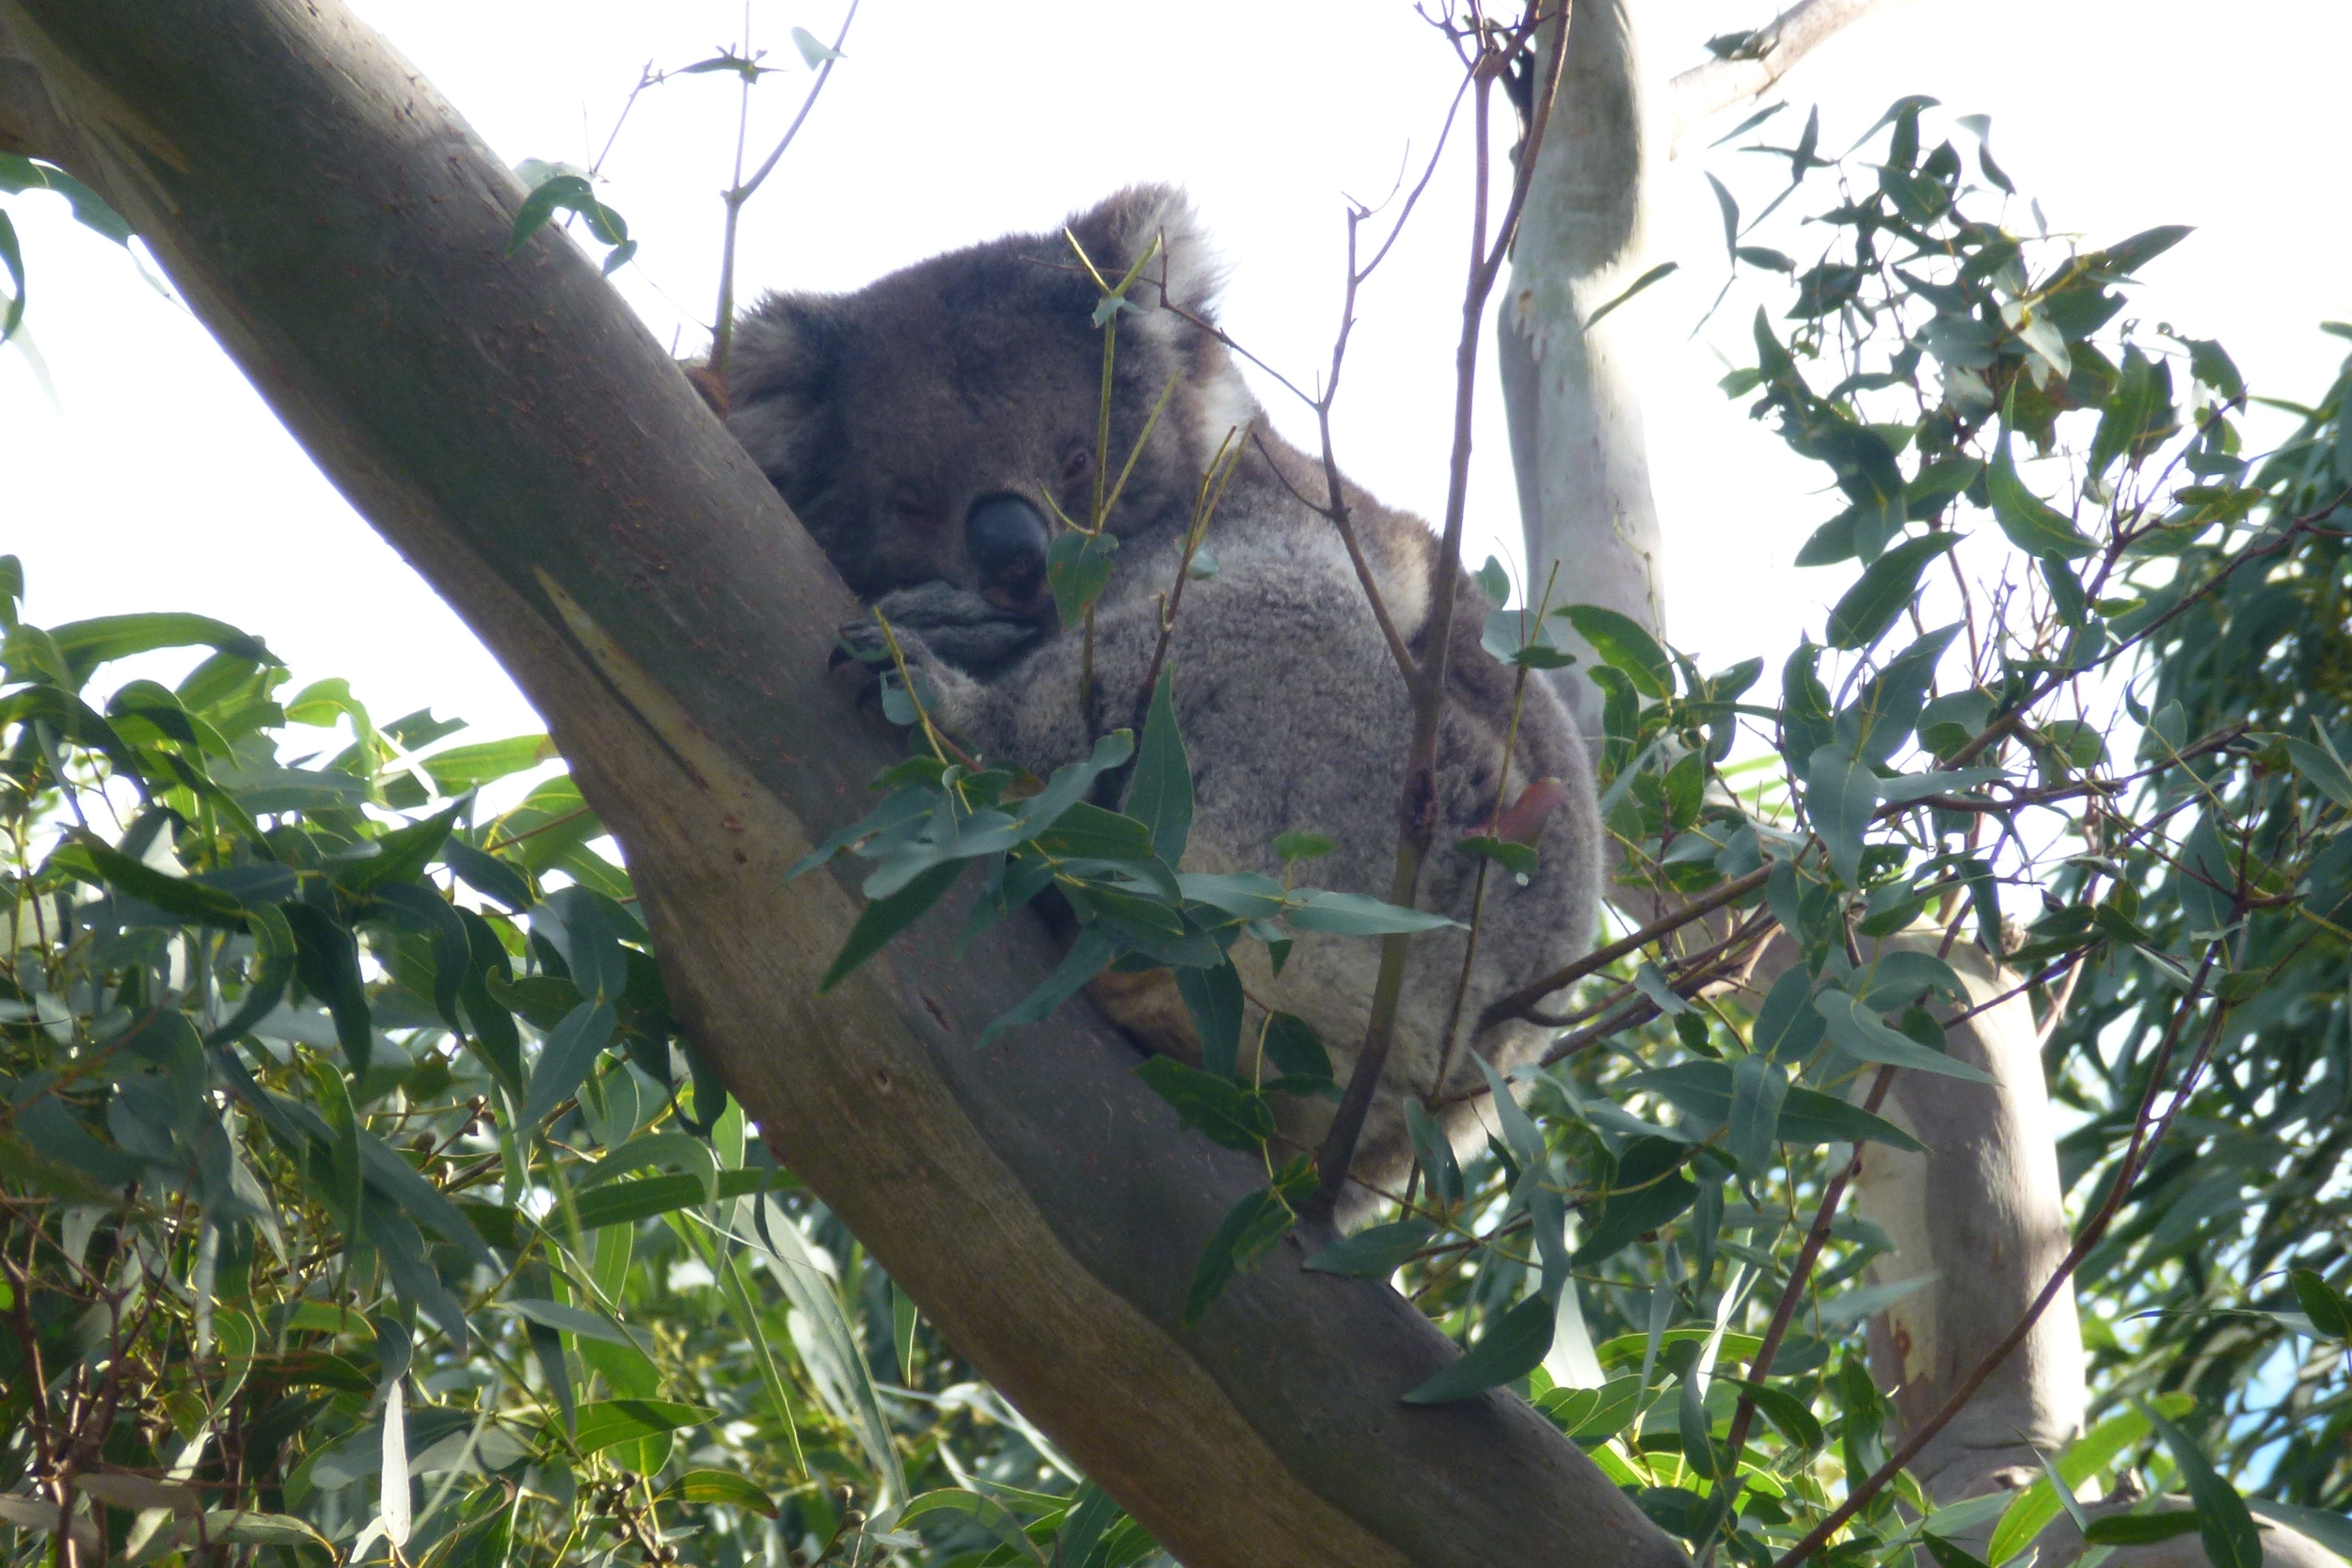 Copy of Koalas